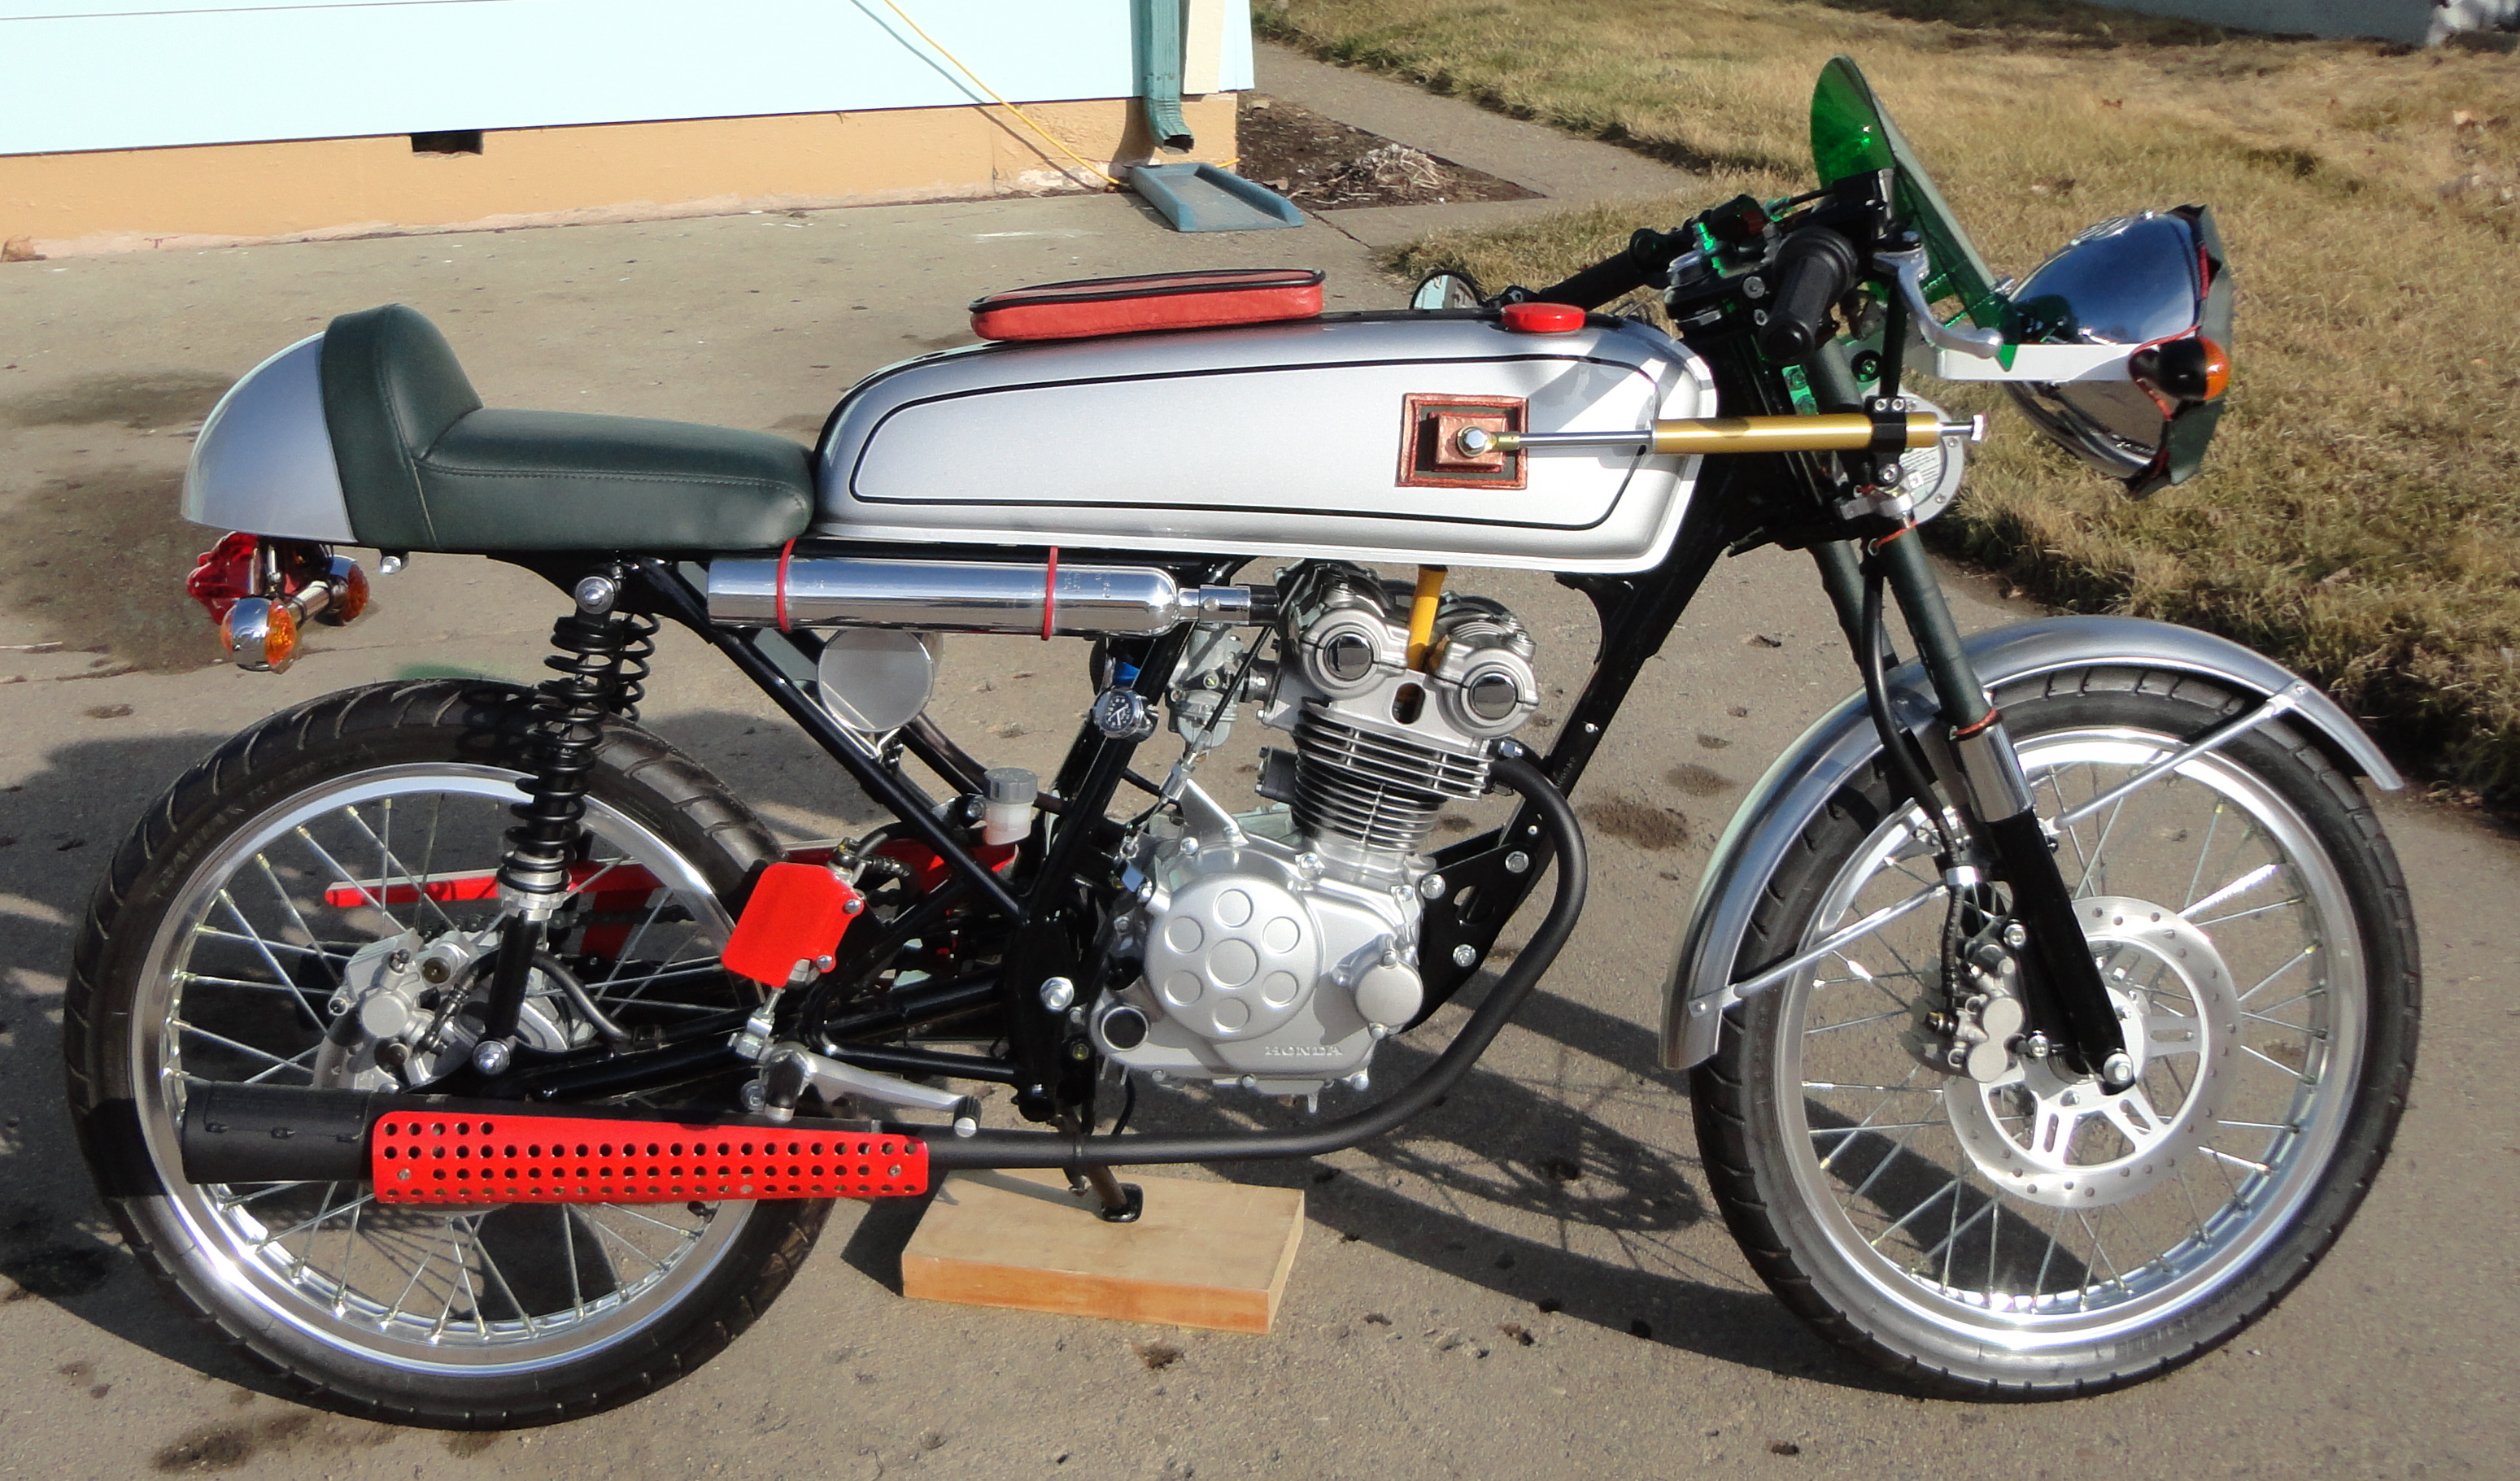 A Dream 50 R As A Cafe Racer From The Heartland Motorcycle Photo Of The Day